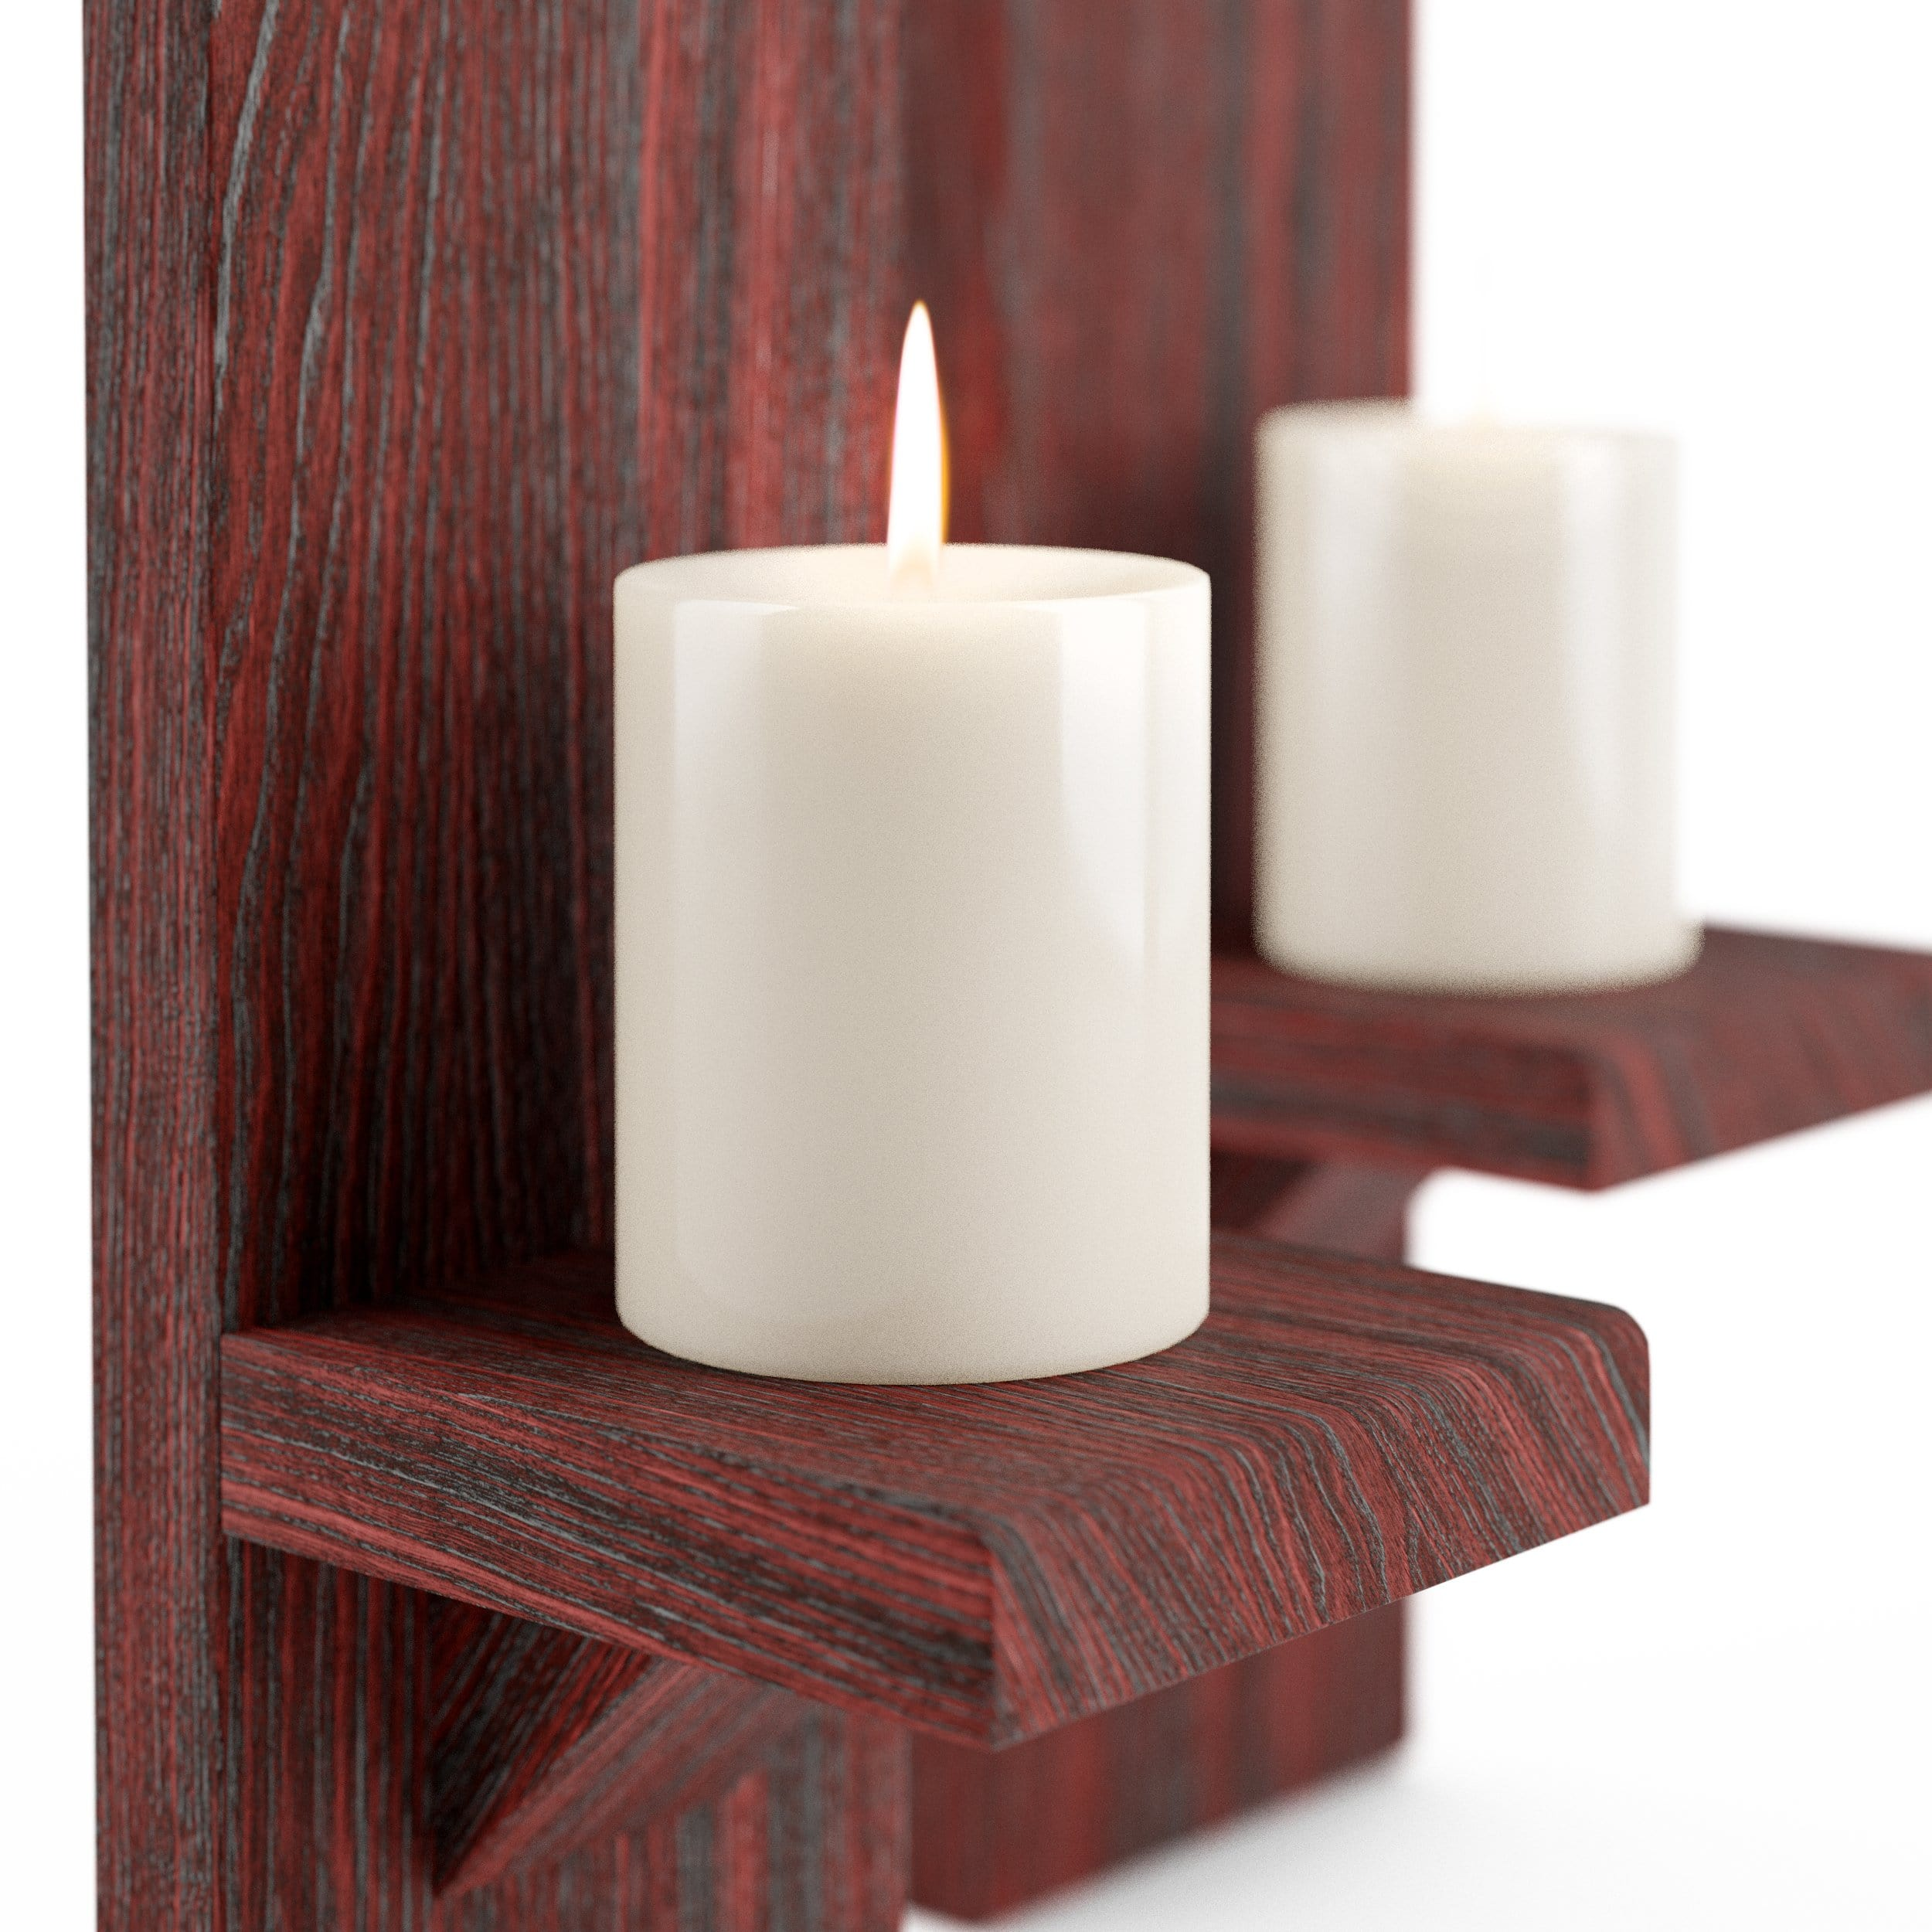 Large Cherry Wall-Mounted Candle Sconces - LocalBeavers